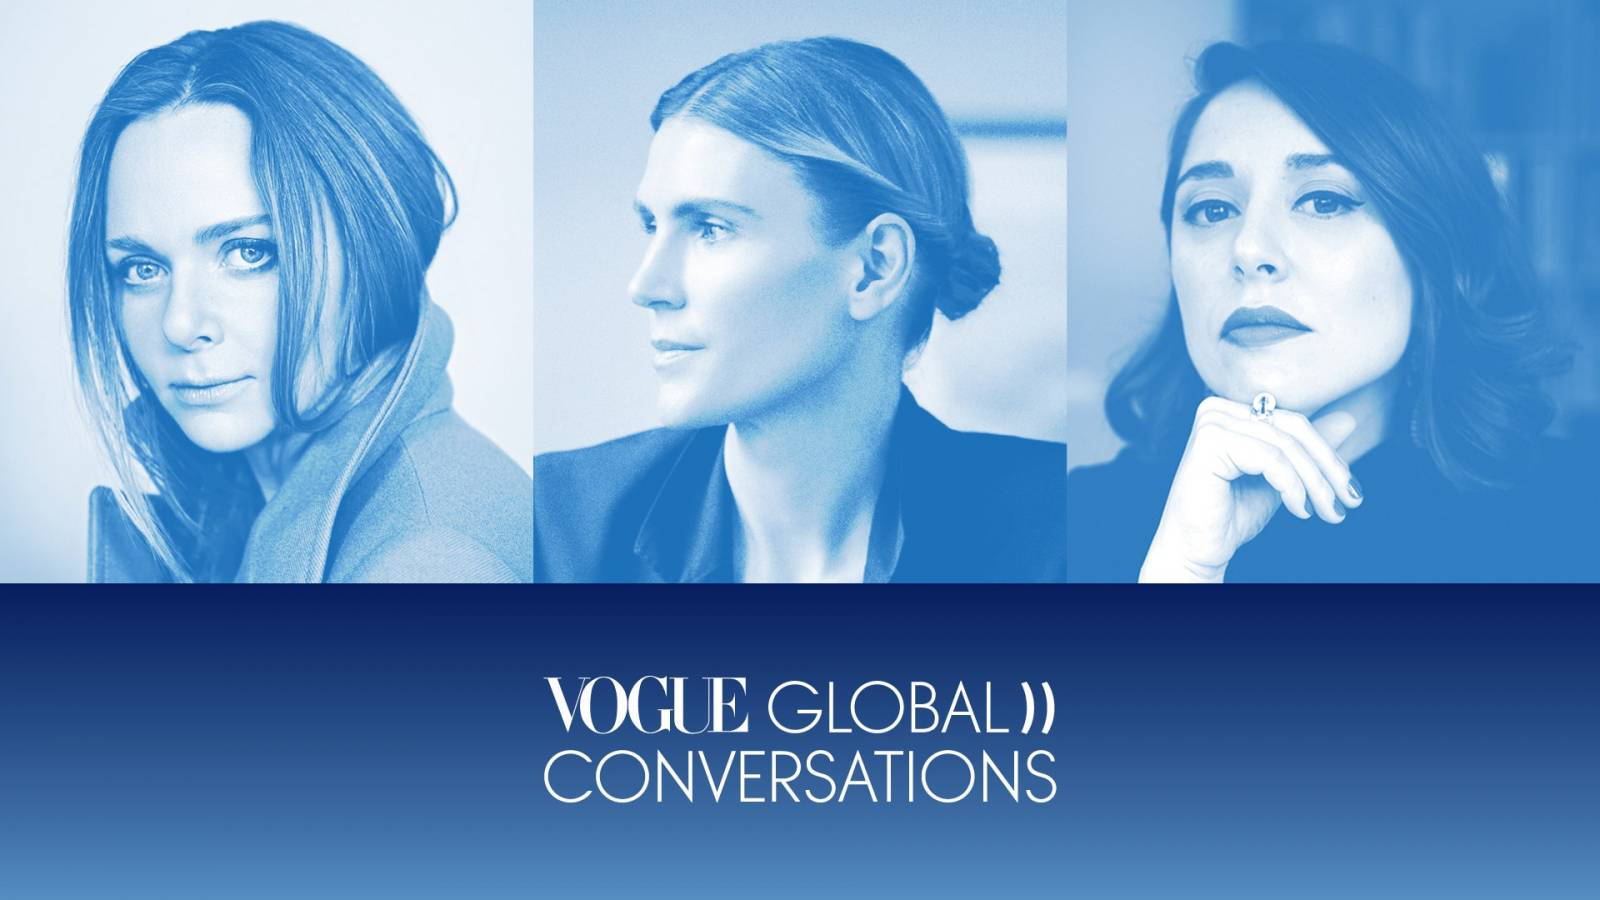 The Beatles Polska: Stella McCartney wzięła udział w Vogue Global Conversations